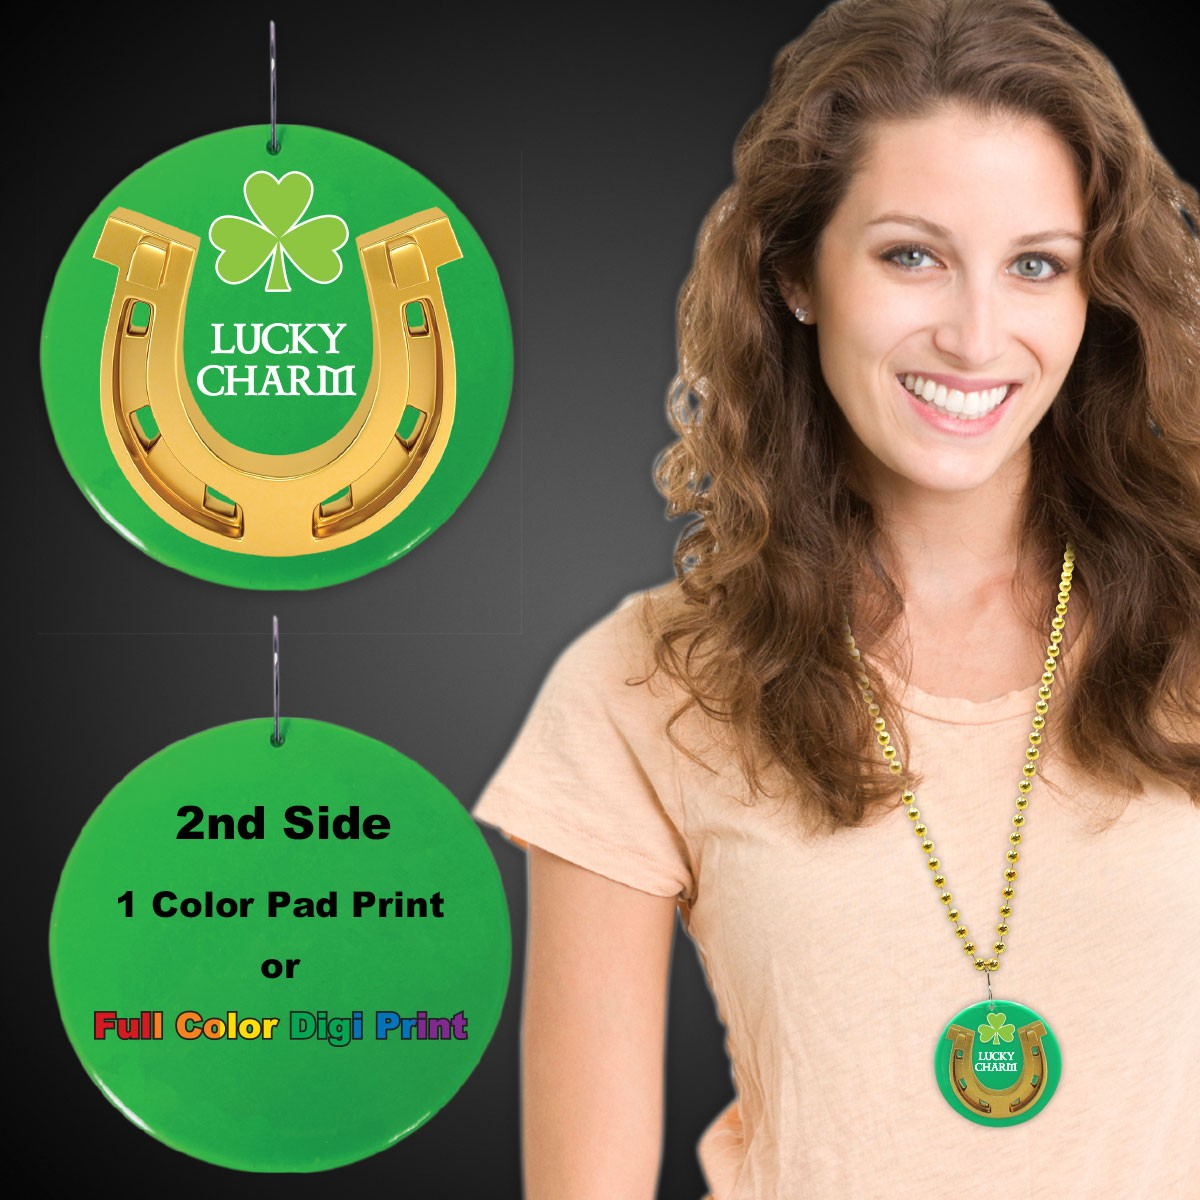 2.5 INCH LUCKY CHARM PRINTD